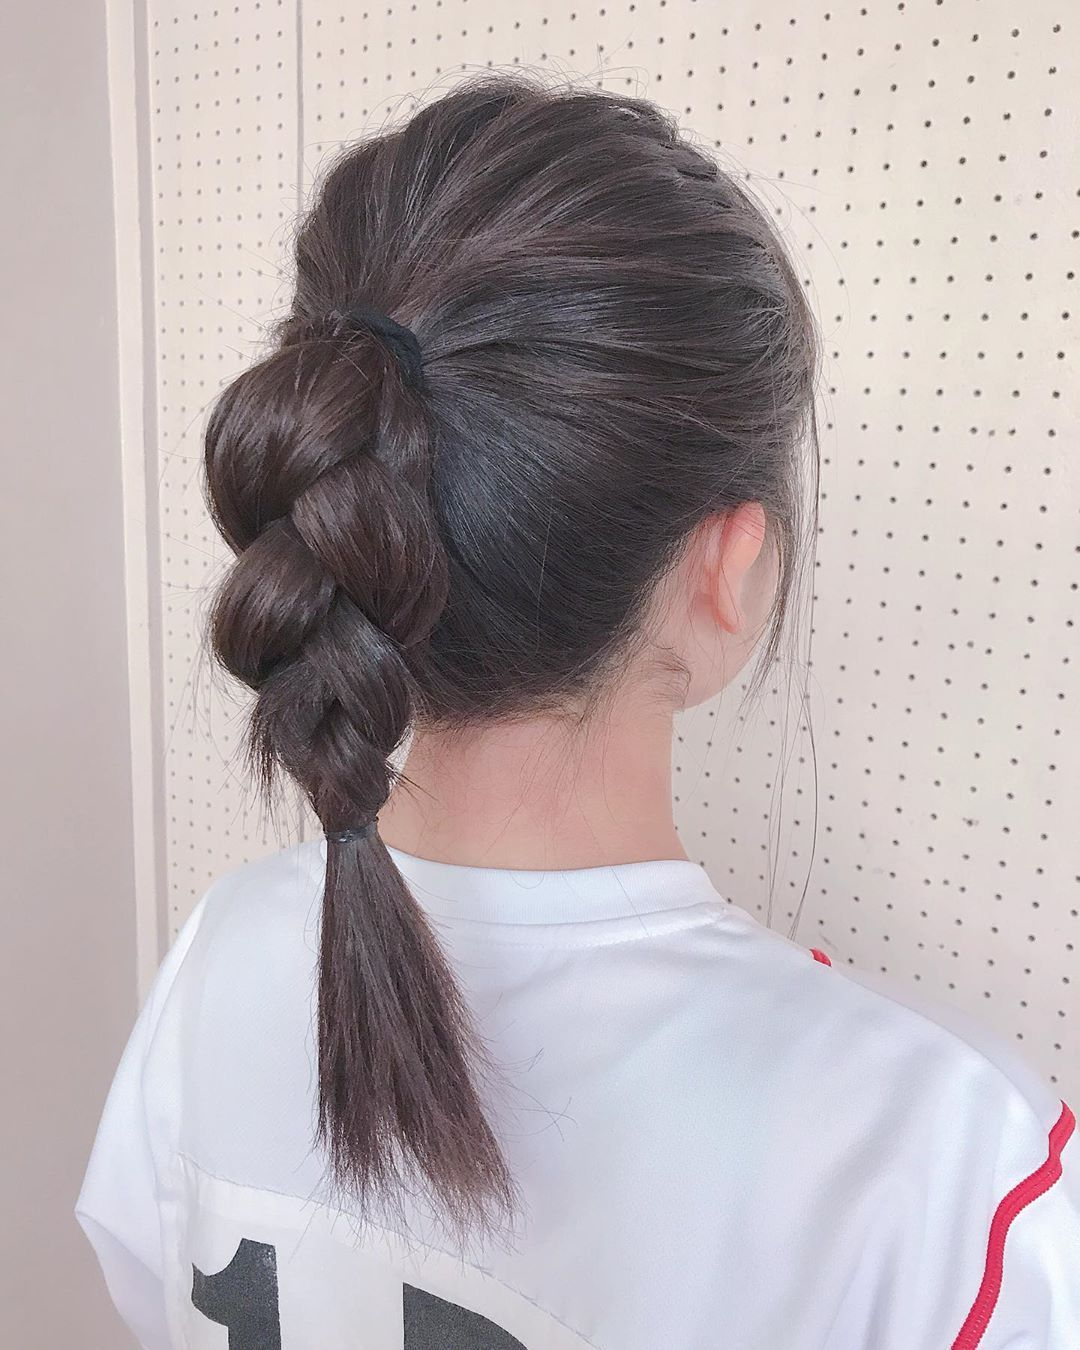 New The 10 Best Hairstyles Today With Pictures 体育祭hair